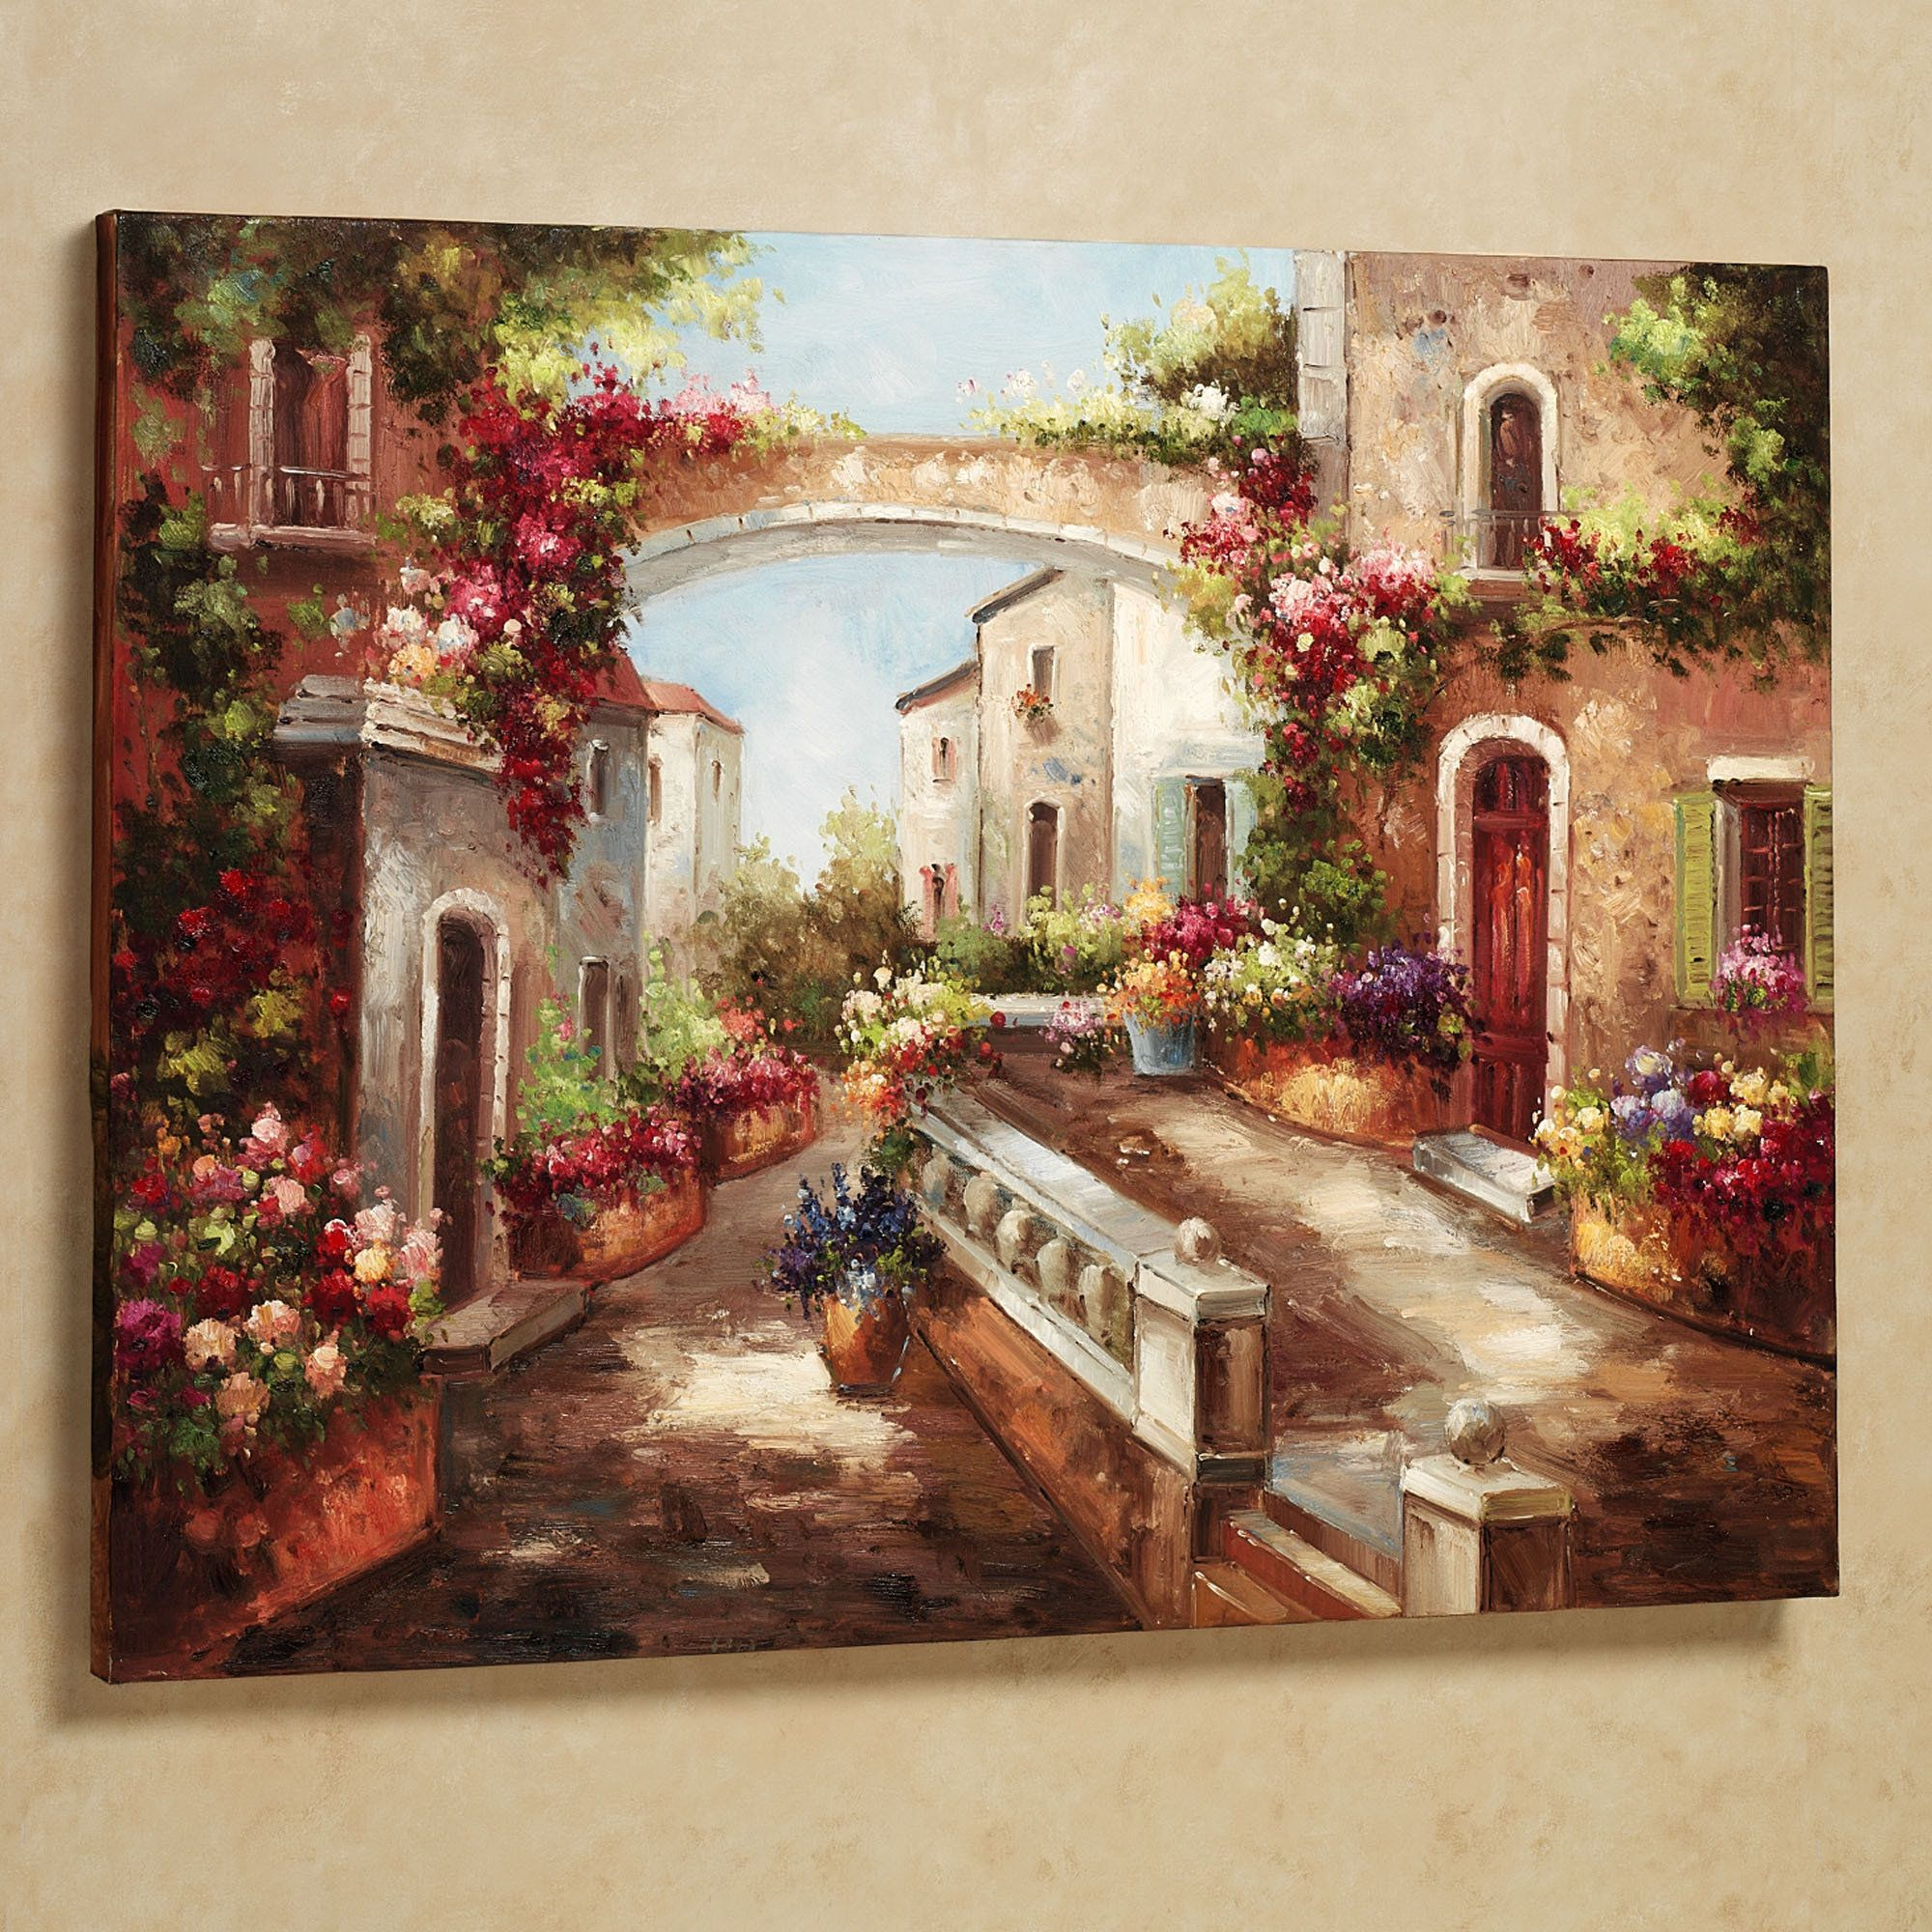 Among The Cozy Confines Of The Town, An Early Spring Is Evident With The  Abundant Flowers That Line The Streets. Handpainted Oil On Canvas Wall Art  Depicts.